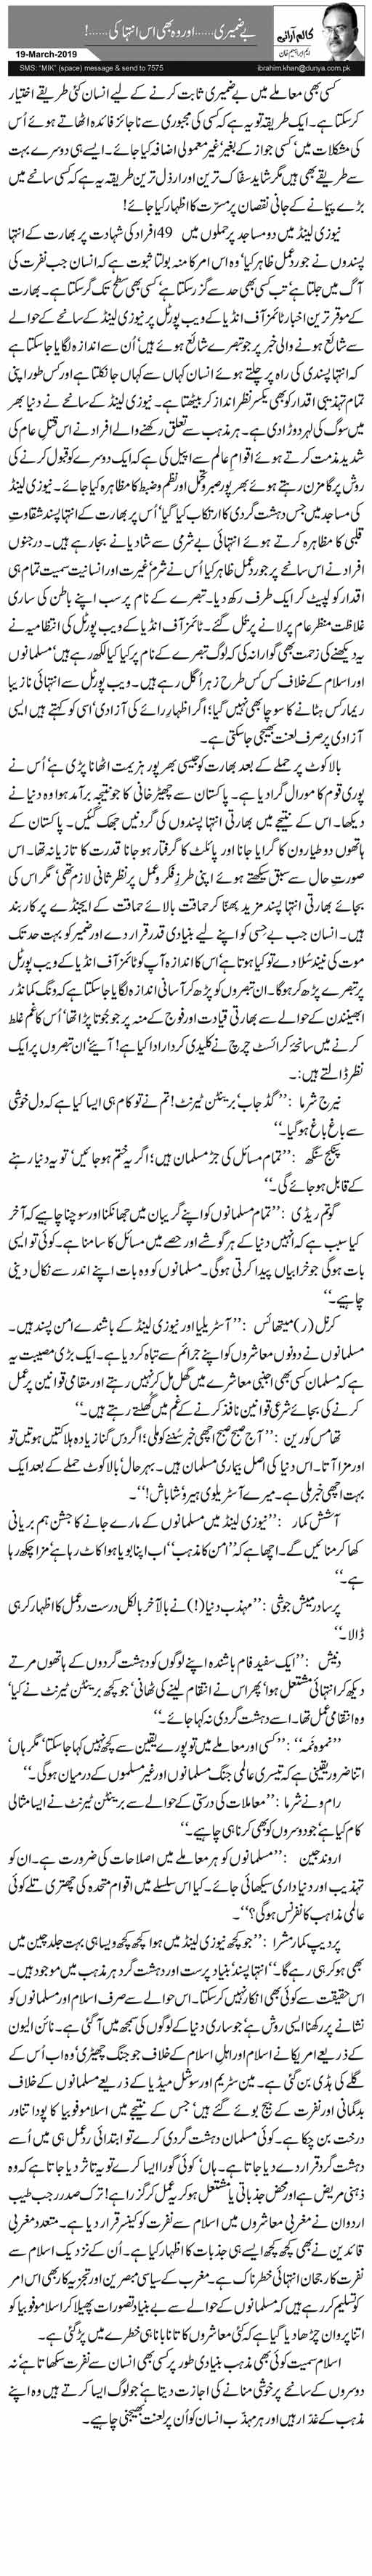 Be Zameeri, Aur Wo Bhi Is Inteha Ki! | M Ibrahim Khan | Daily Urdu Columns